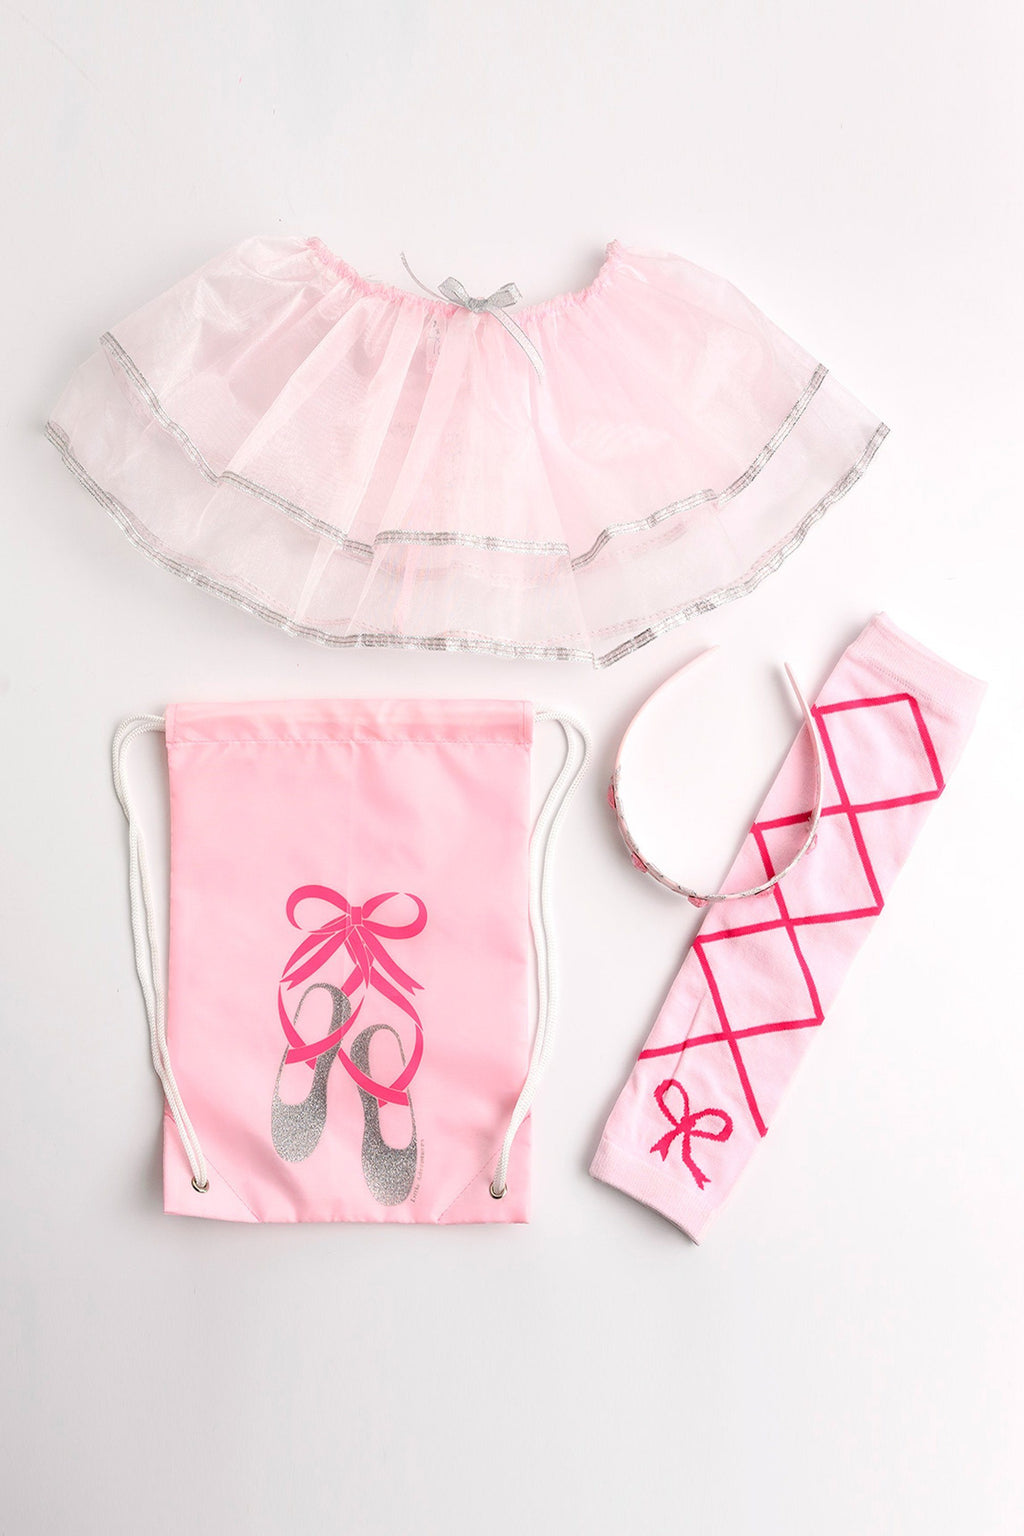 The Drawstring Backpack Gift Sets - Drawstring Backpack Ballerina Gift Set